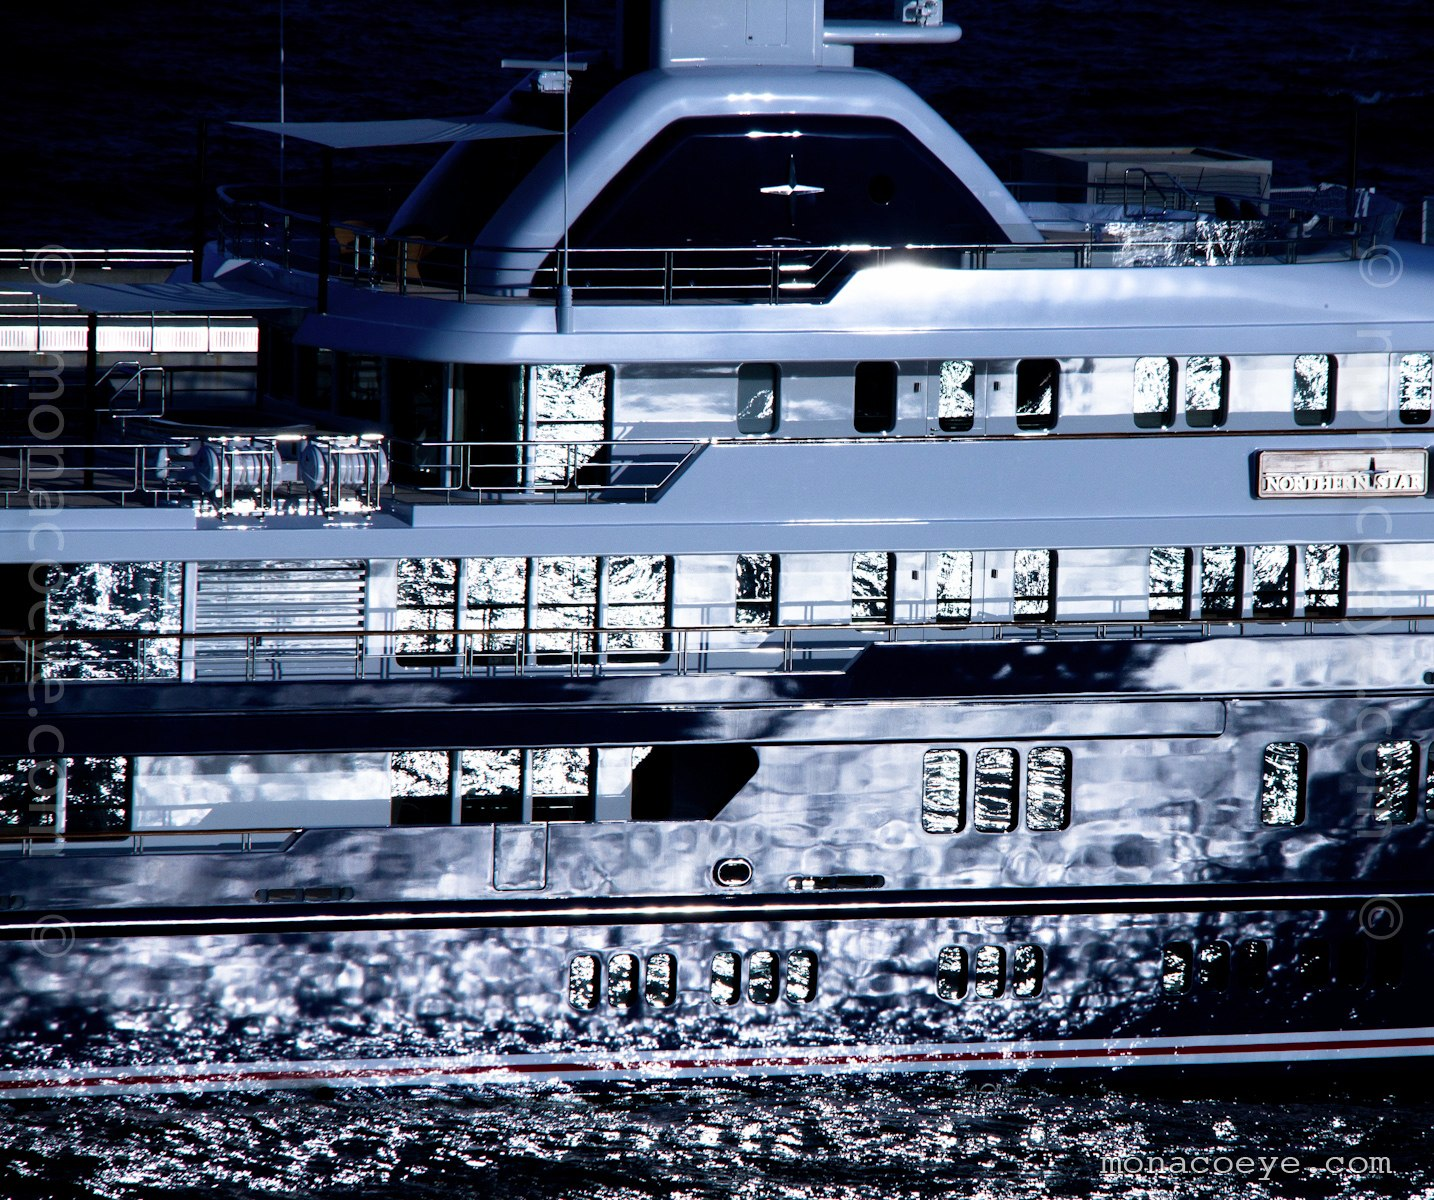 Northern Star yacht. Built by Lurssen, #13651, 2009, 75 metres